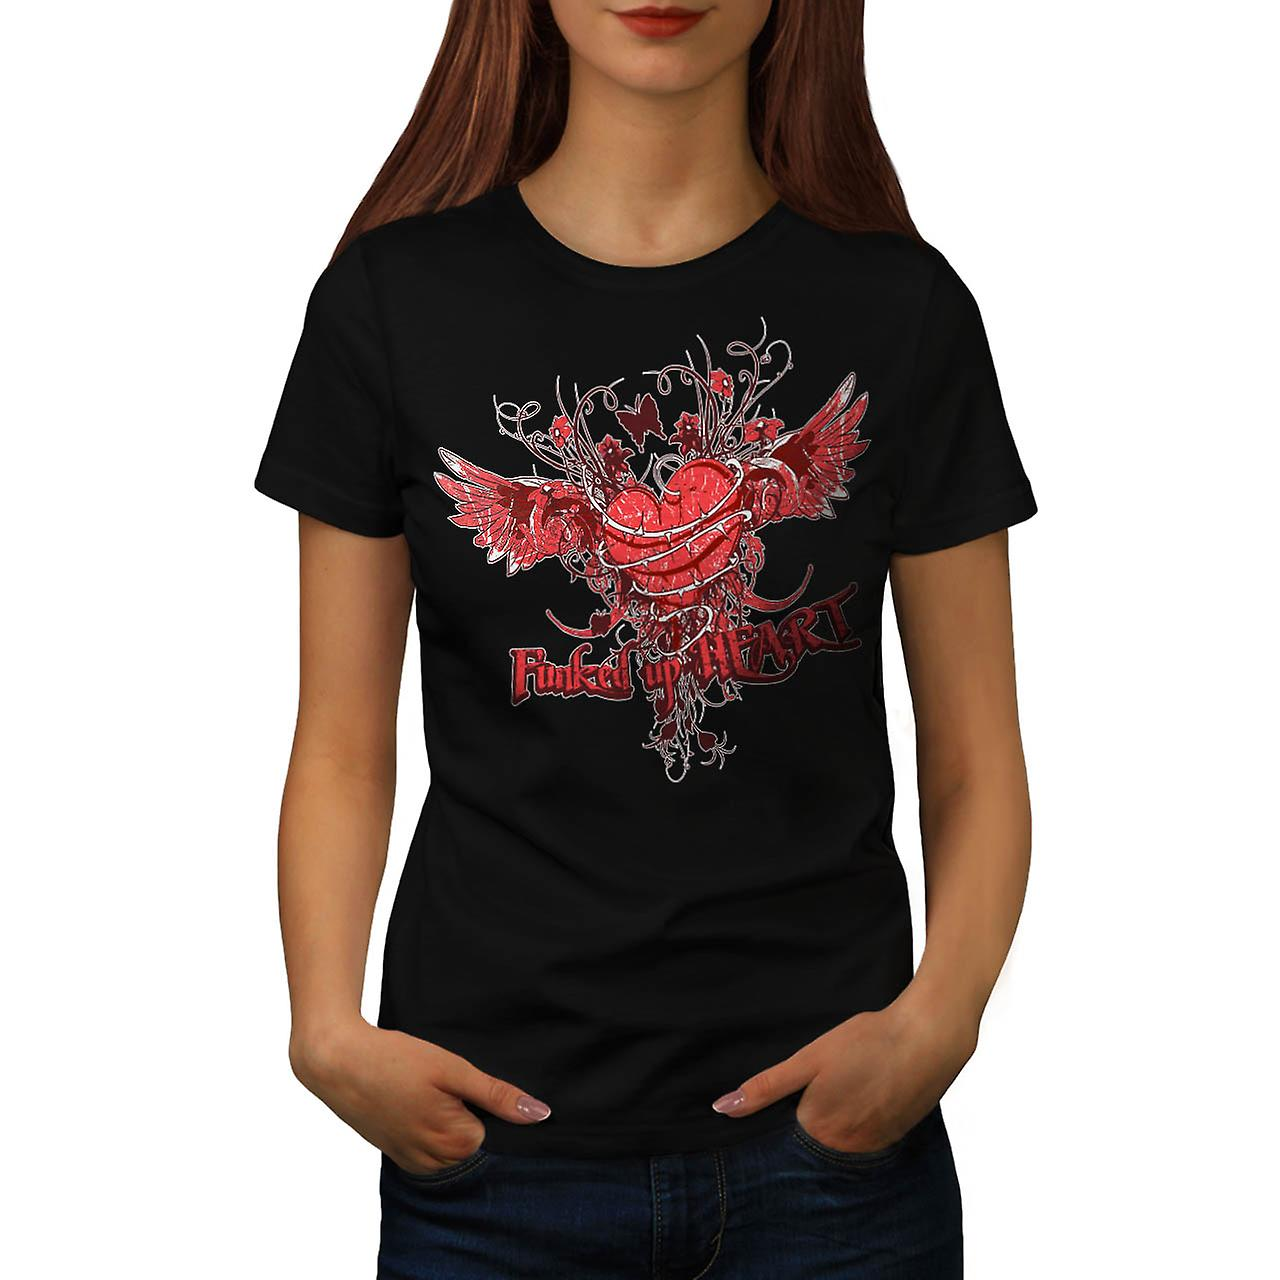 Funked Up cuore amore Thorn Rose t-shirt nera donna | Wellcoda